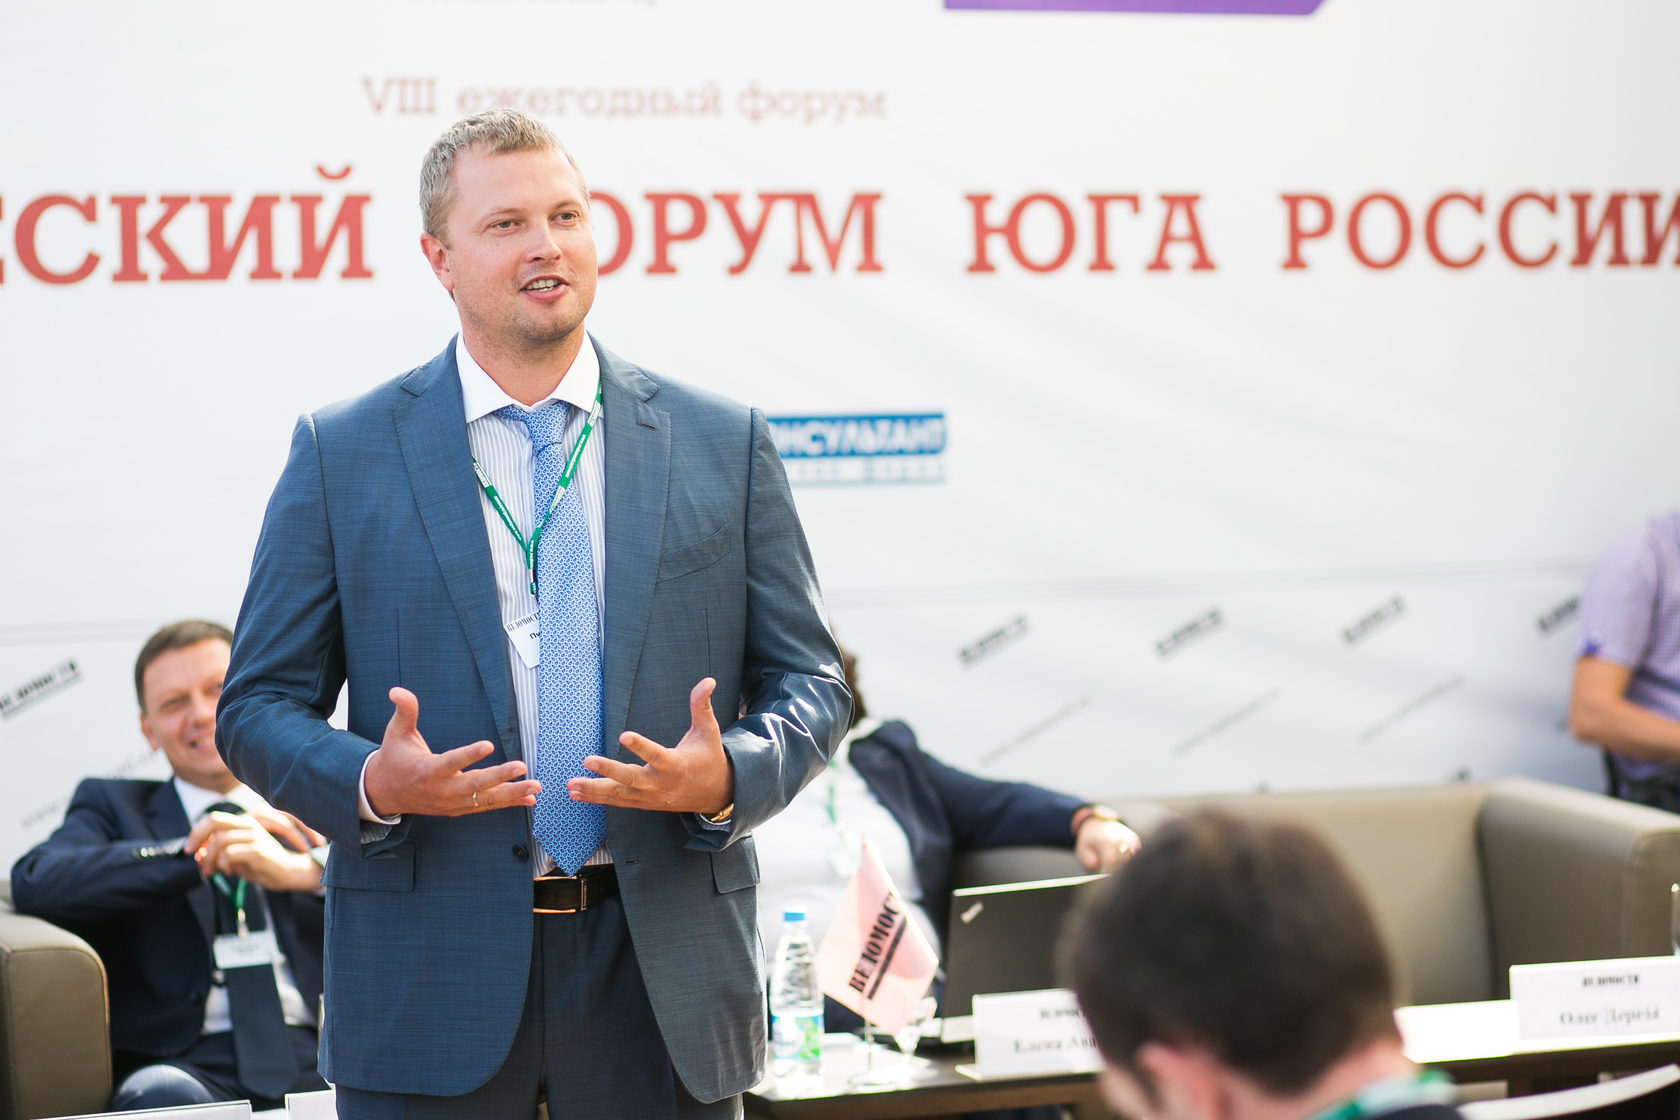 X Anniversary Southern Russia Legal Forum Took Place in Sochi. Discussions, Lawyer Regatta and Formula One Racing